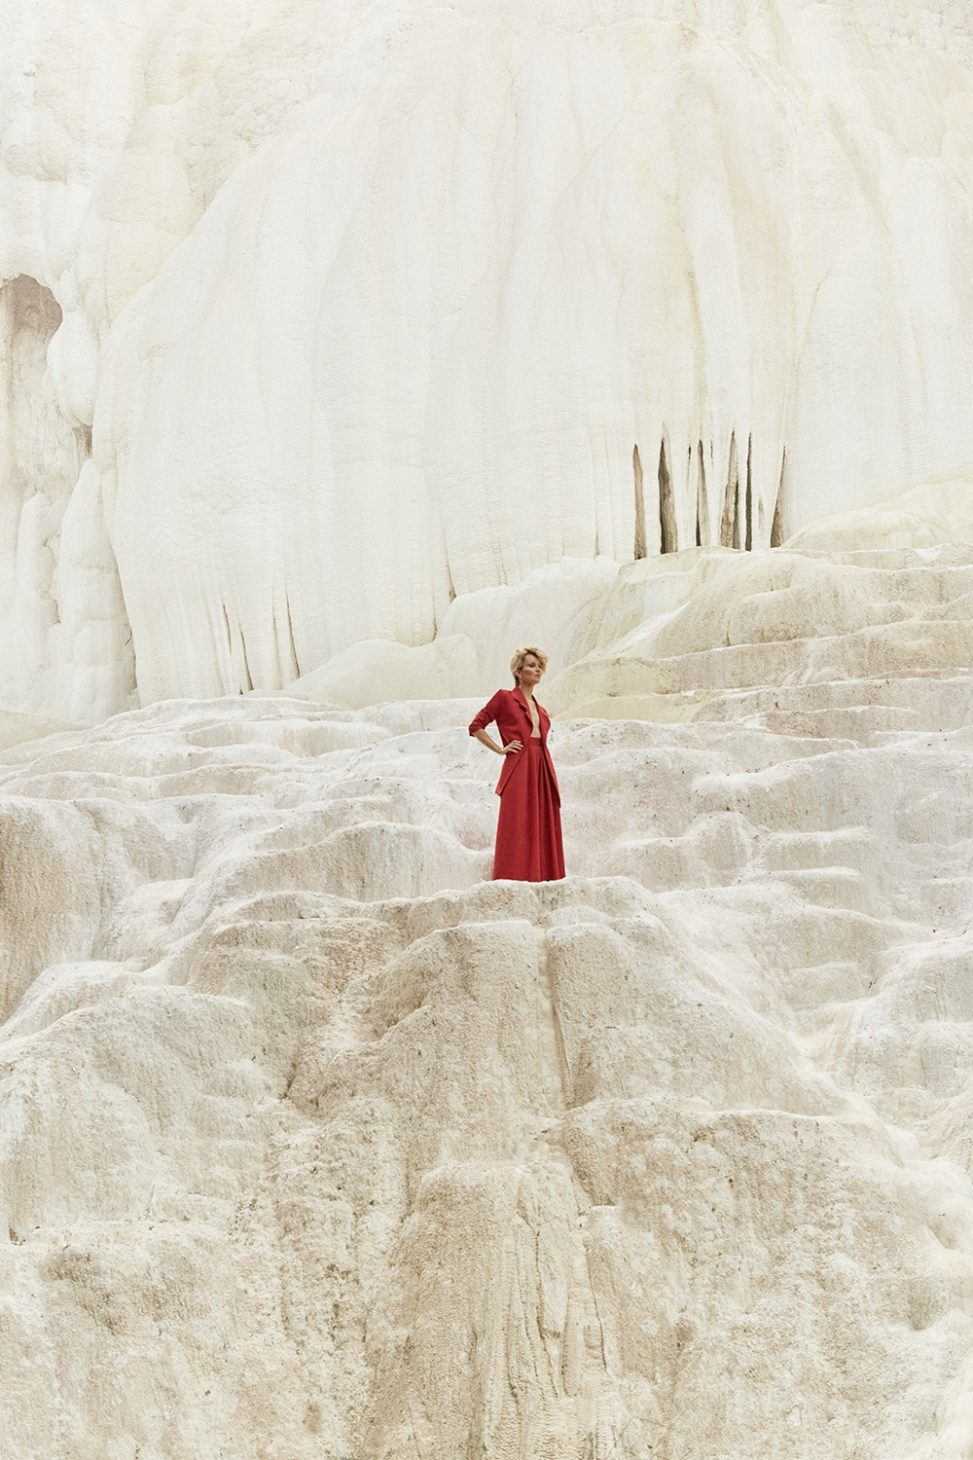 Woman is standing in abstract surrounding in red suit. Surrounding is white rock.